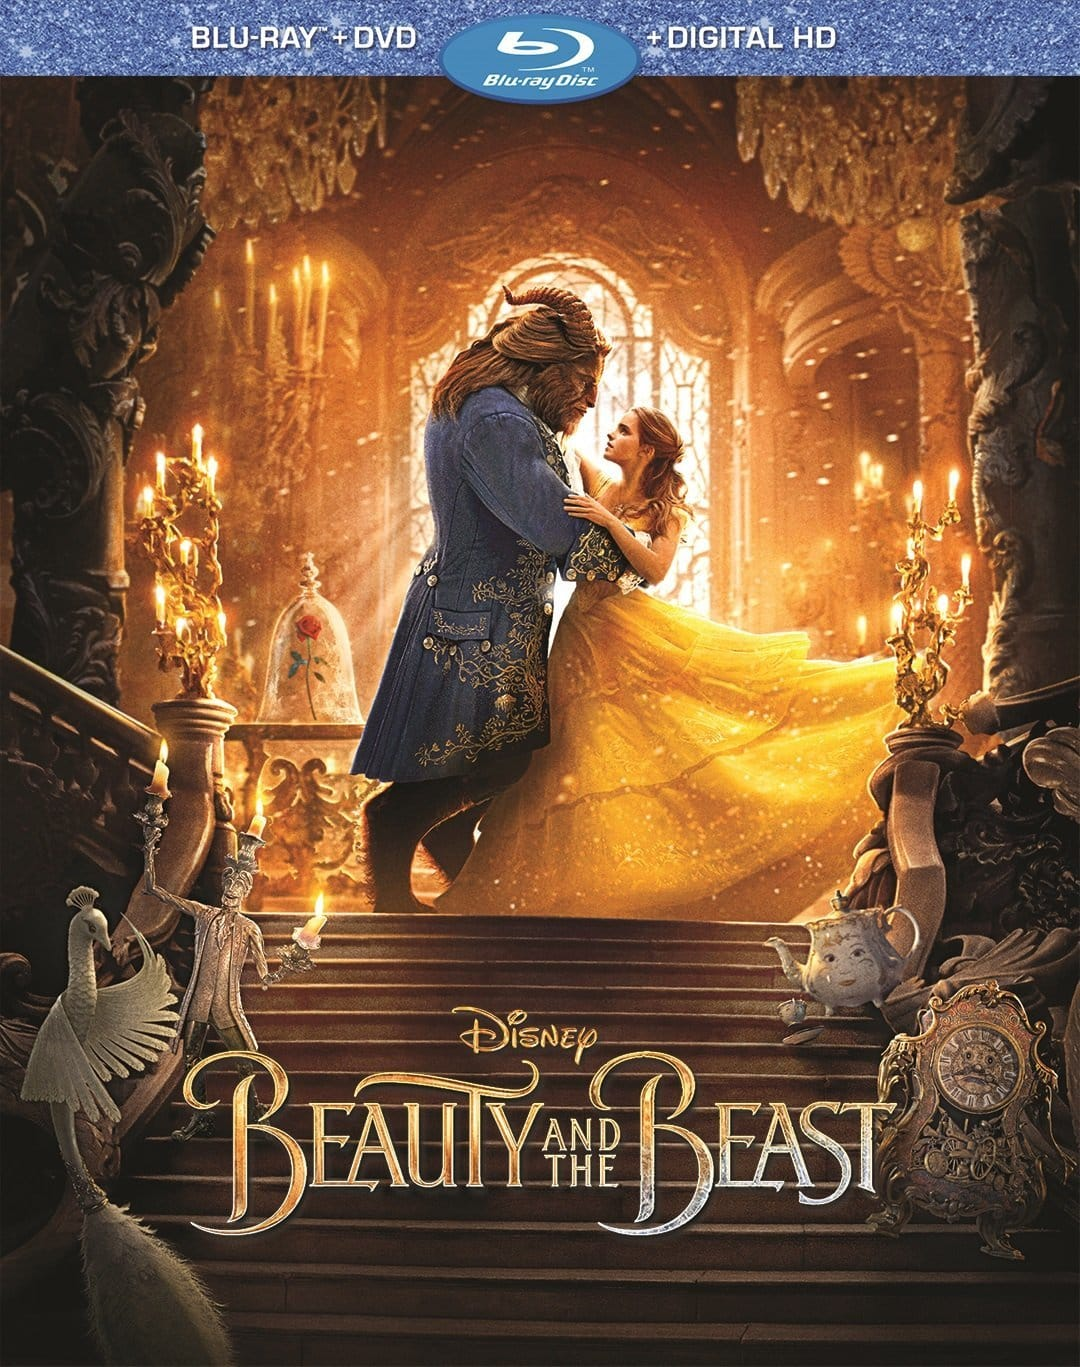 Beauty and the Beast 2017 Blu-ray + DVD + Digital UV Copy $14.93 Prime Exclusive